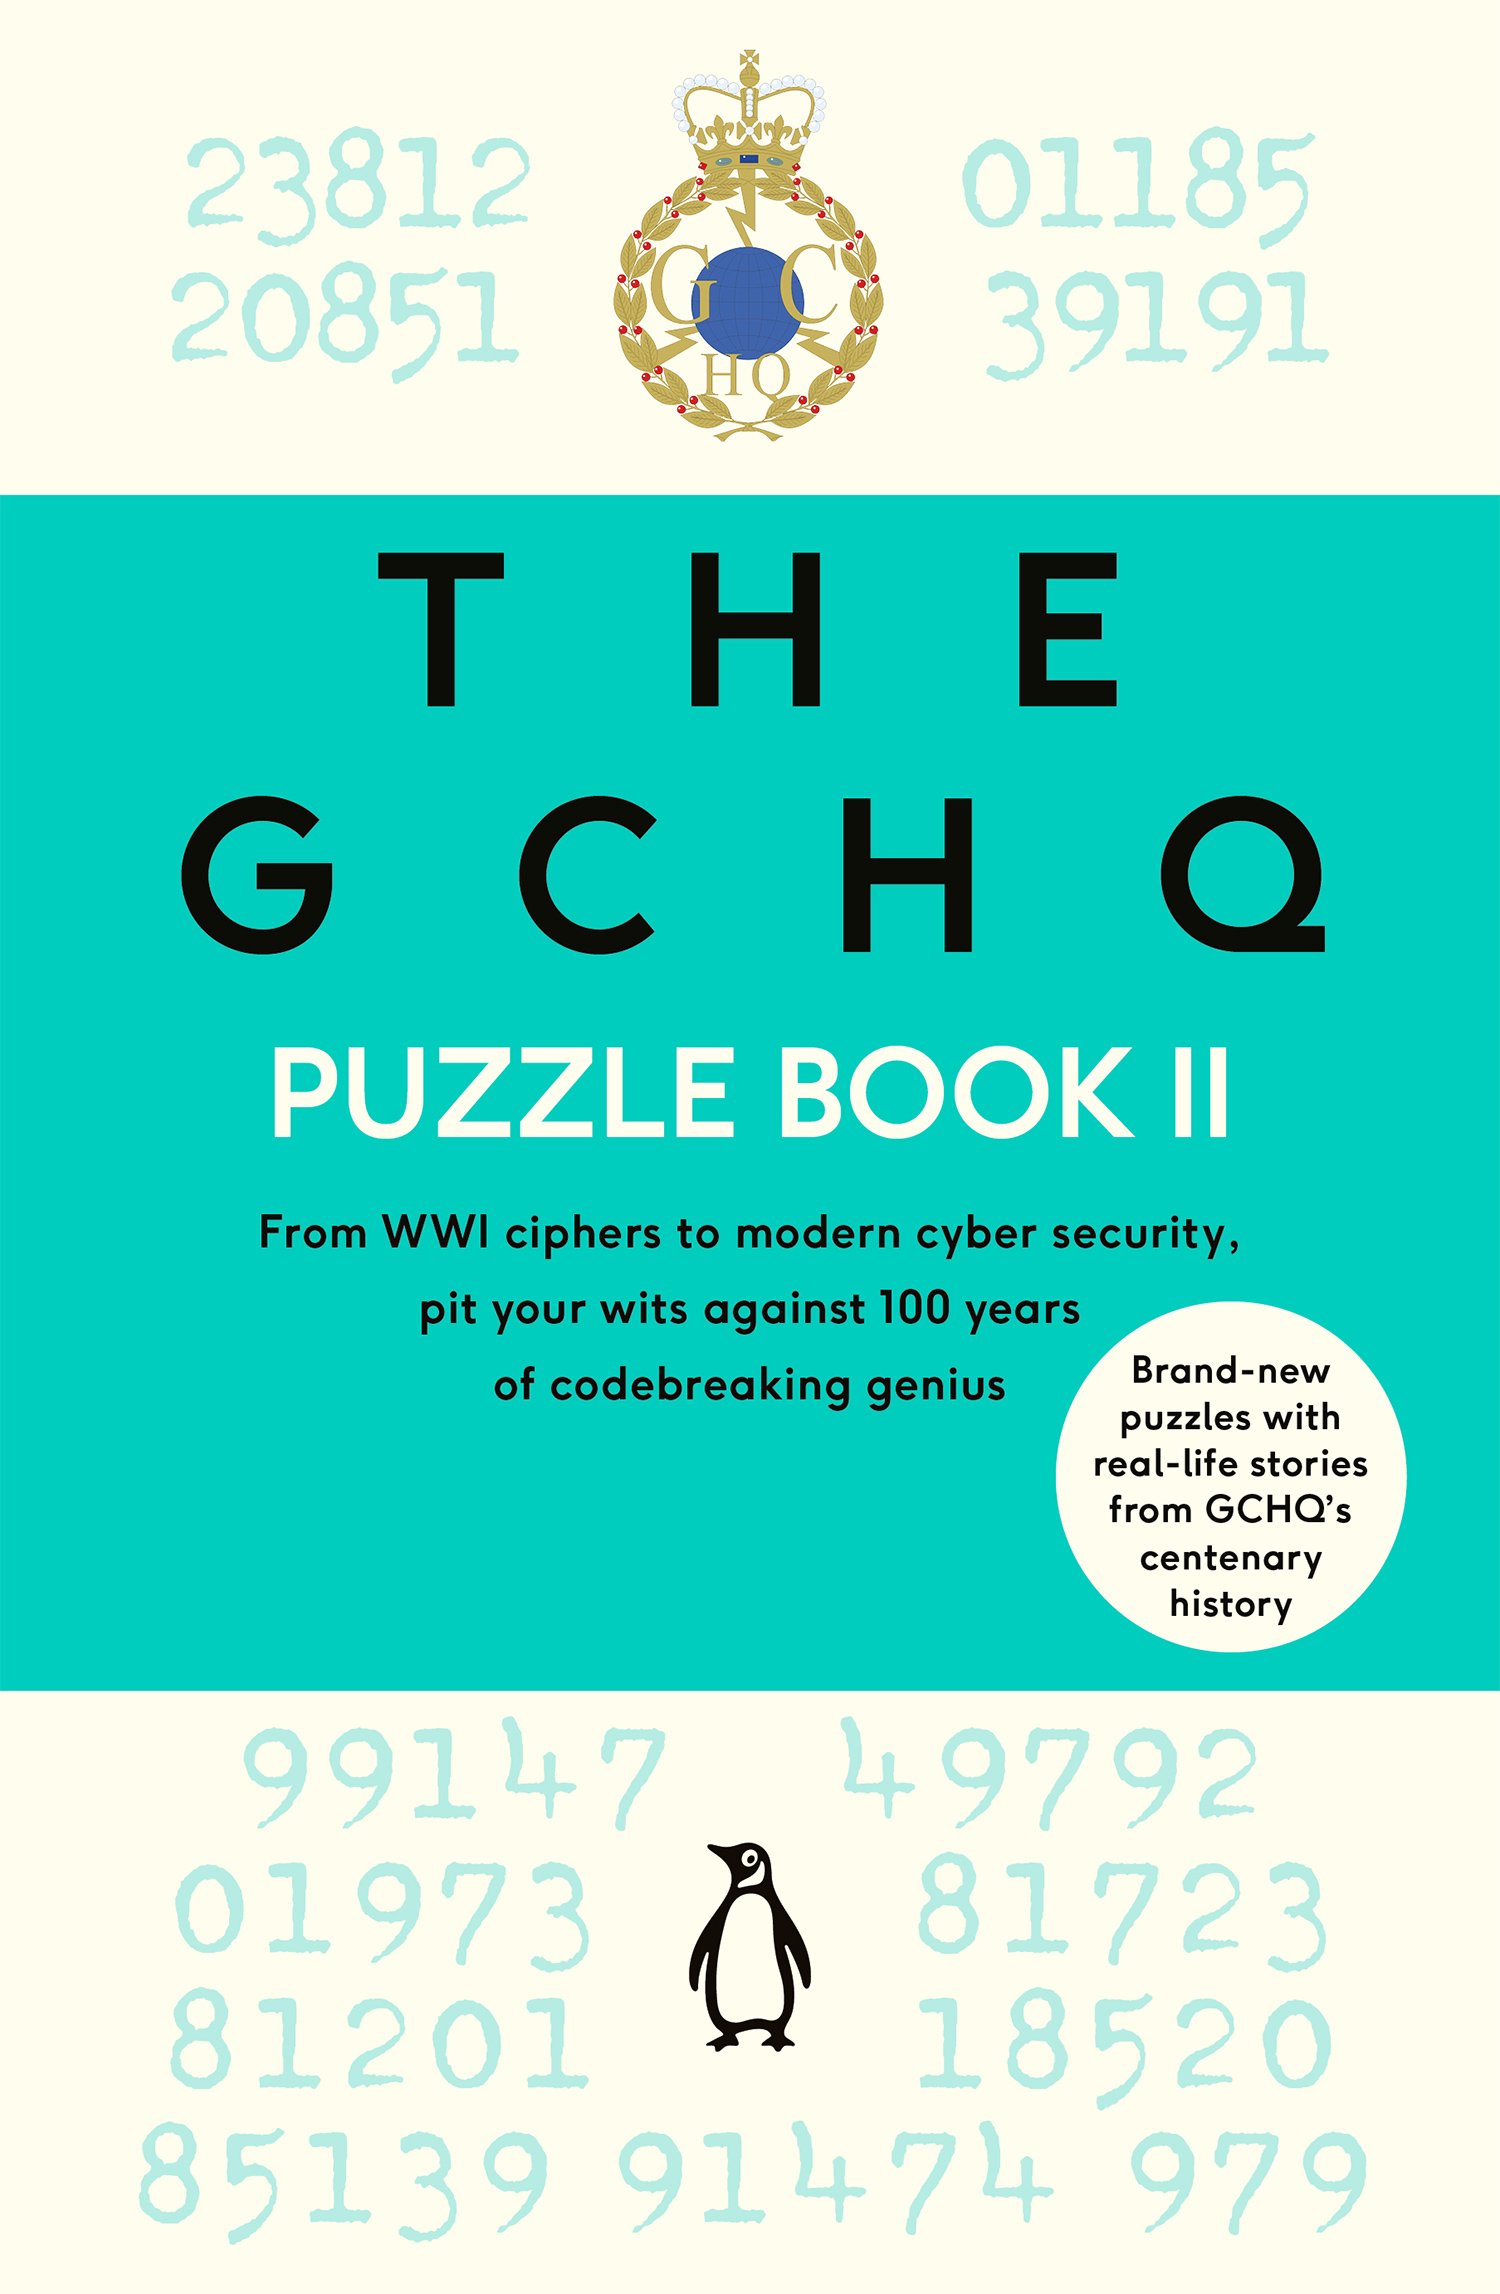 GCHQ and the IET present a new puzzle designed for STEM students and